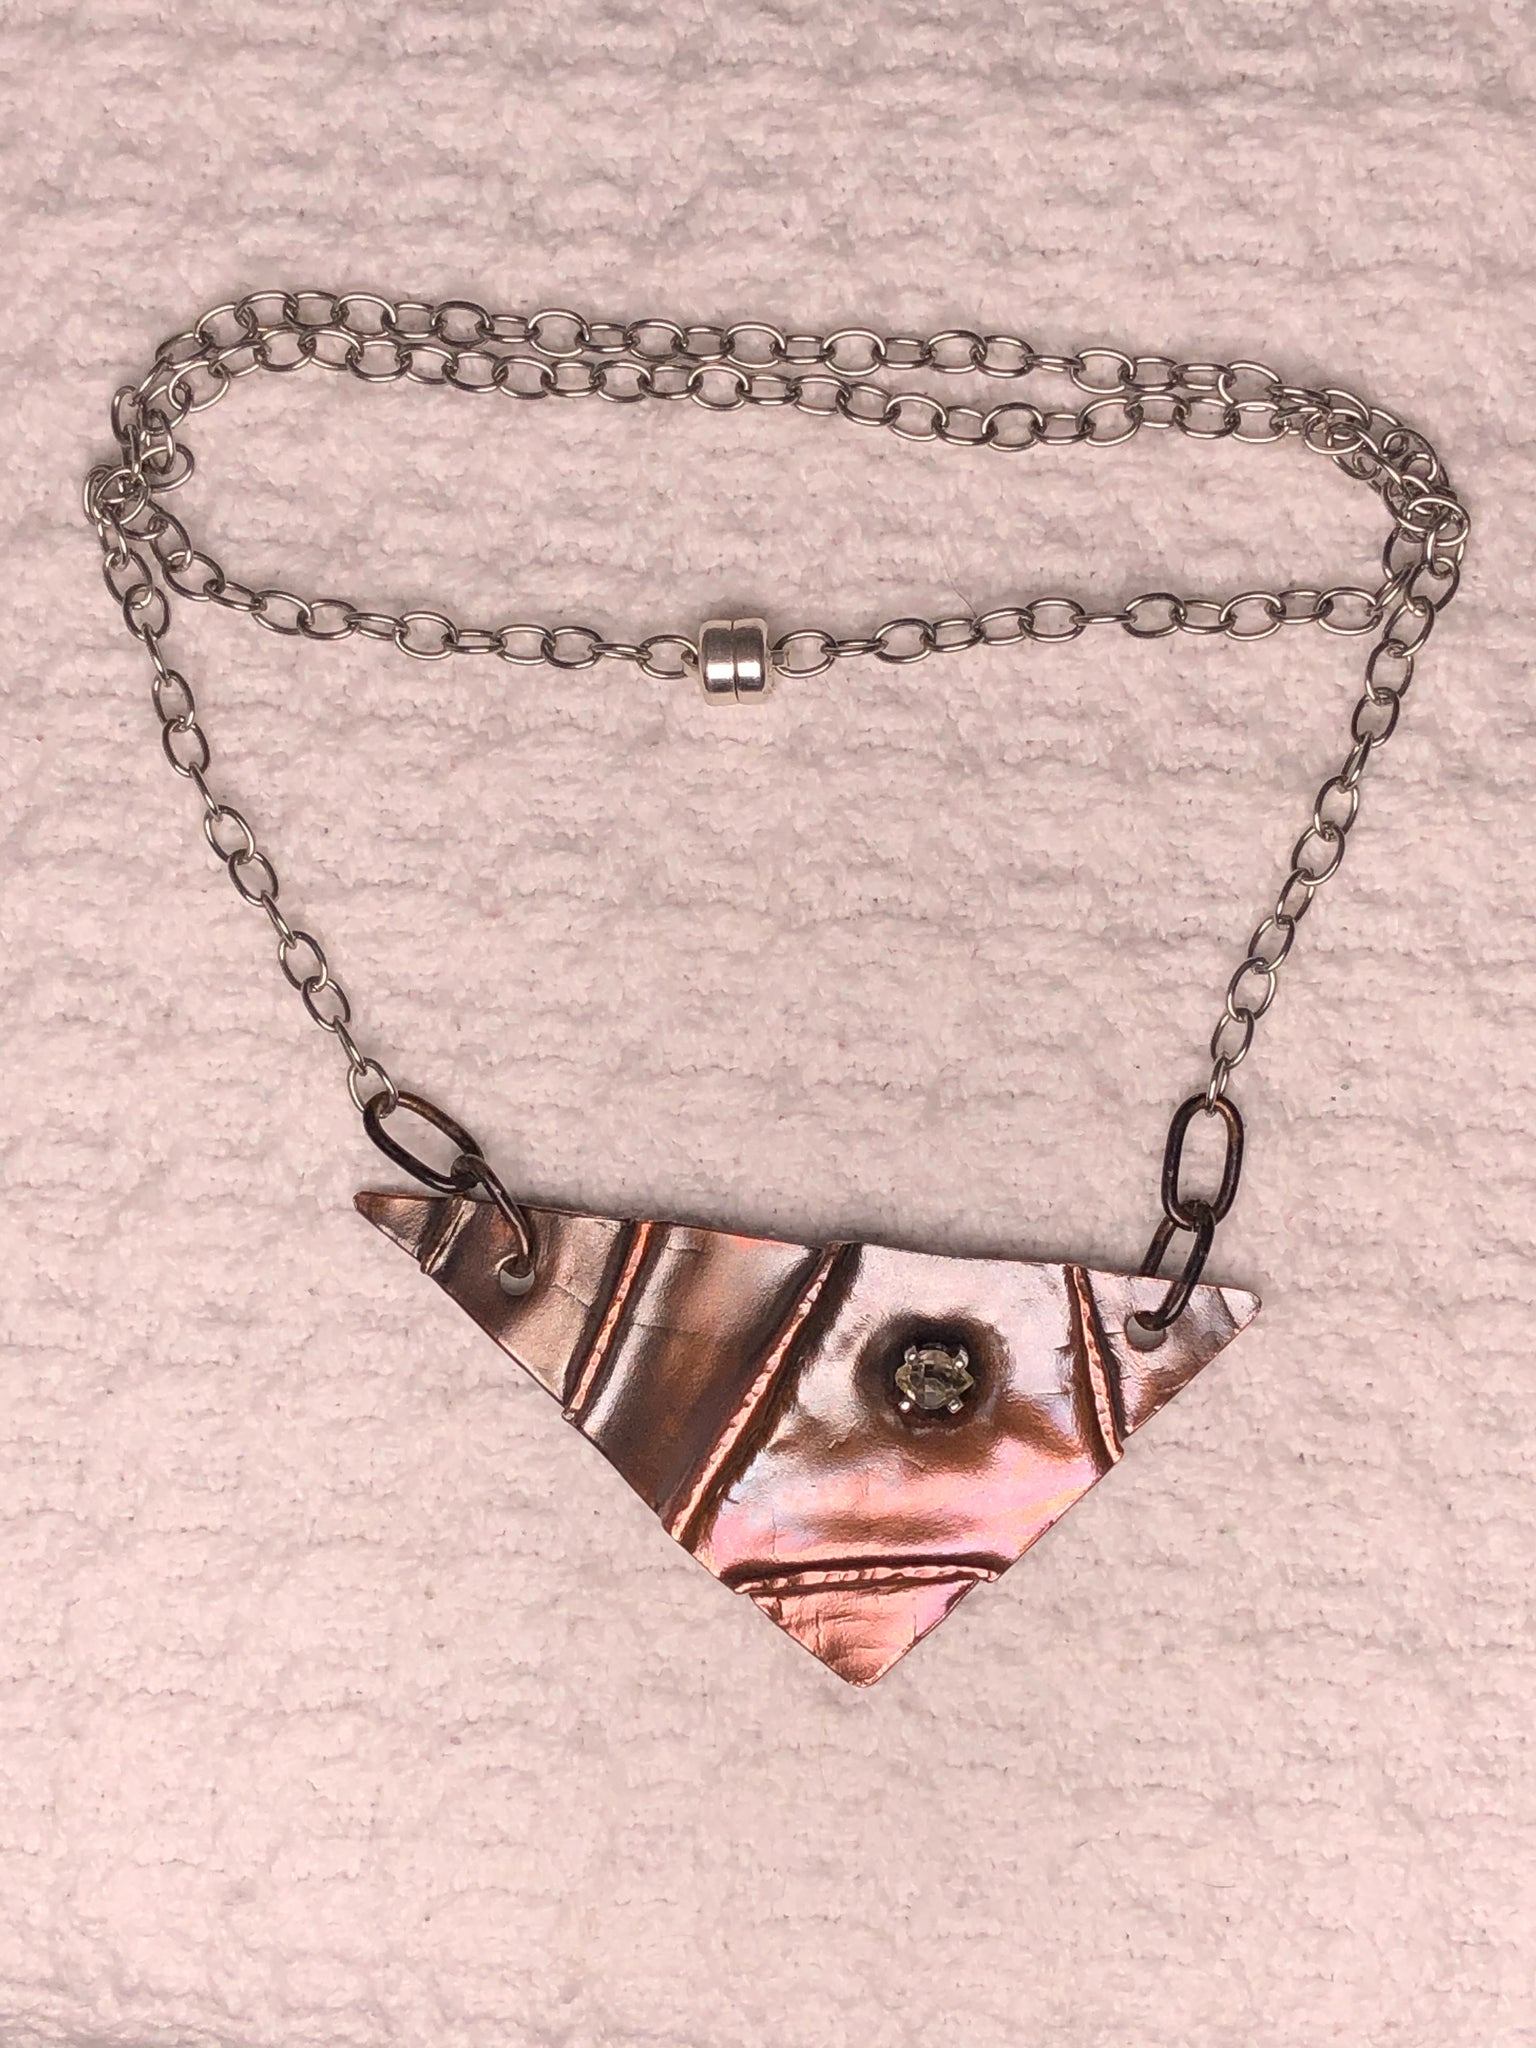 Hammered Folded Copper with fused Silver setting with Herkimer 10inch Necklace